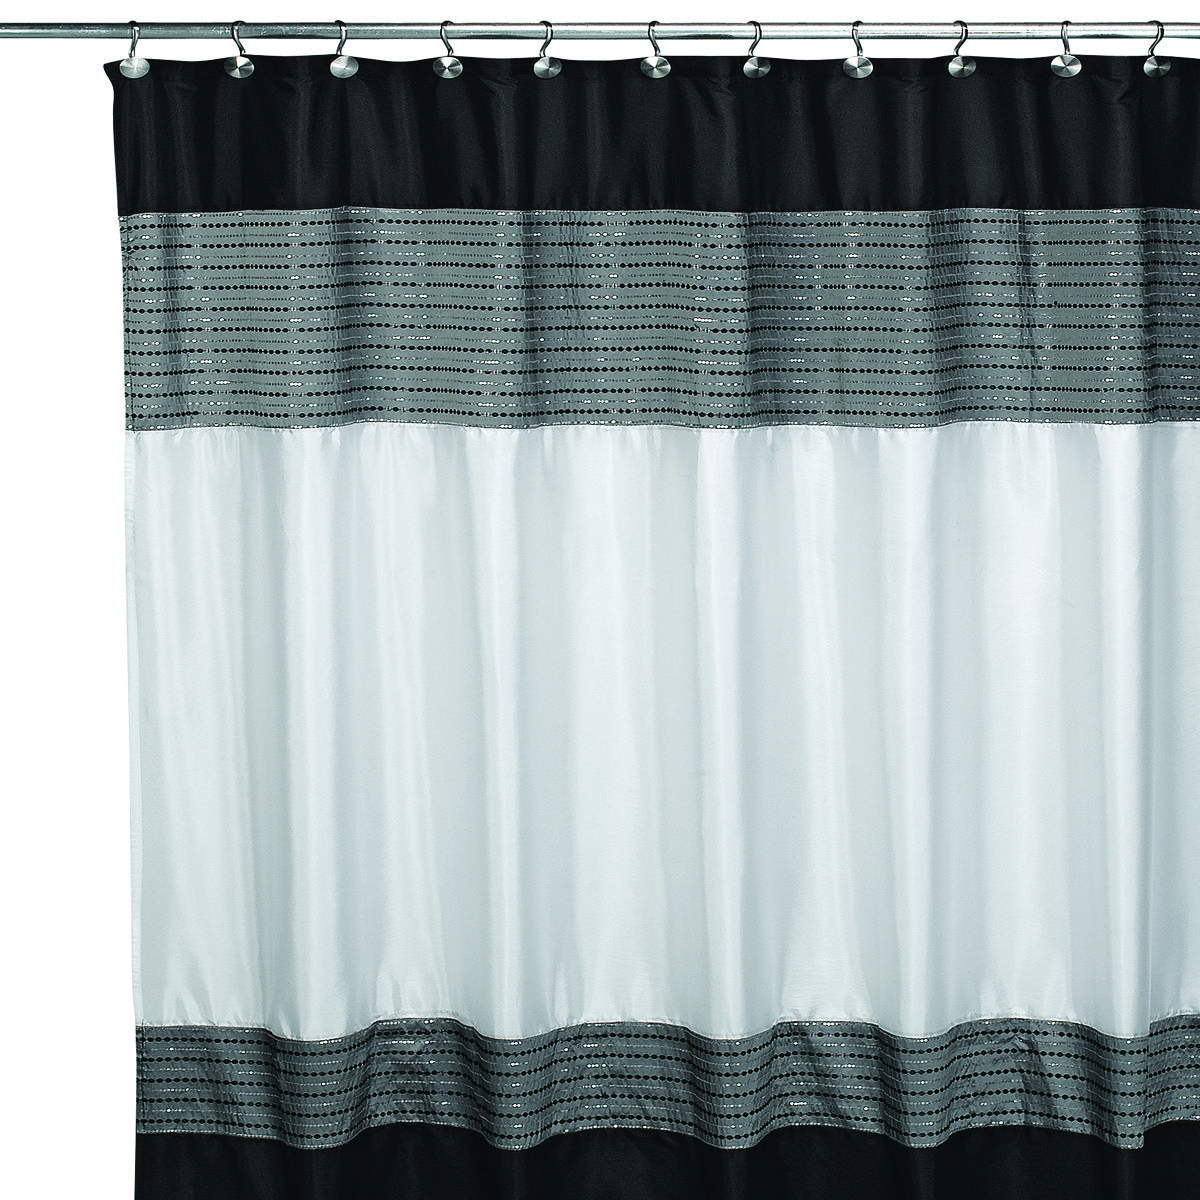 modern and sleek, this sequined shower curtain will dress up your